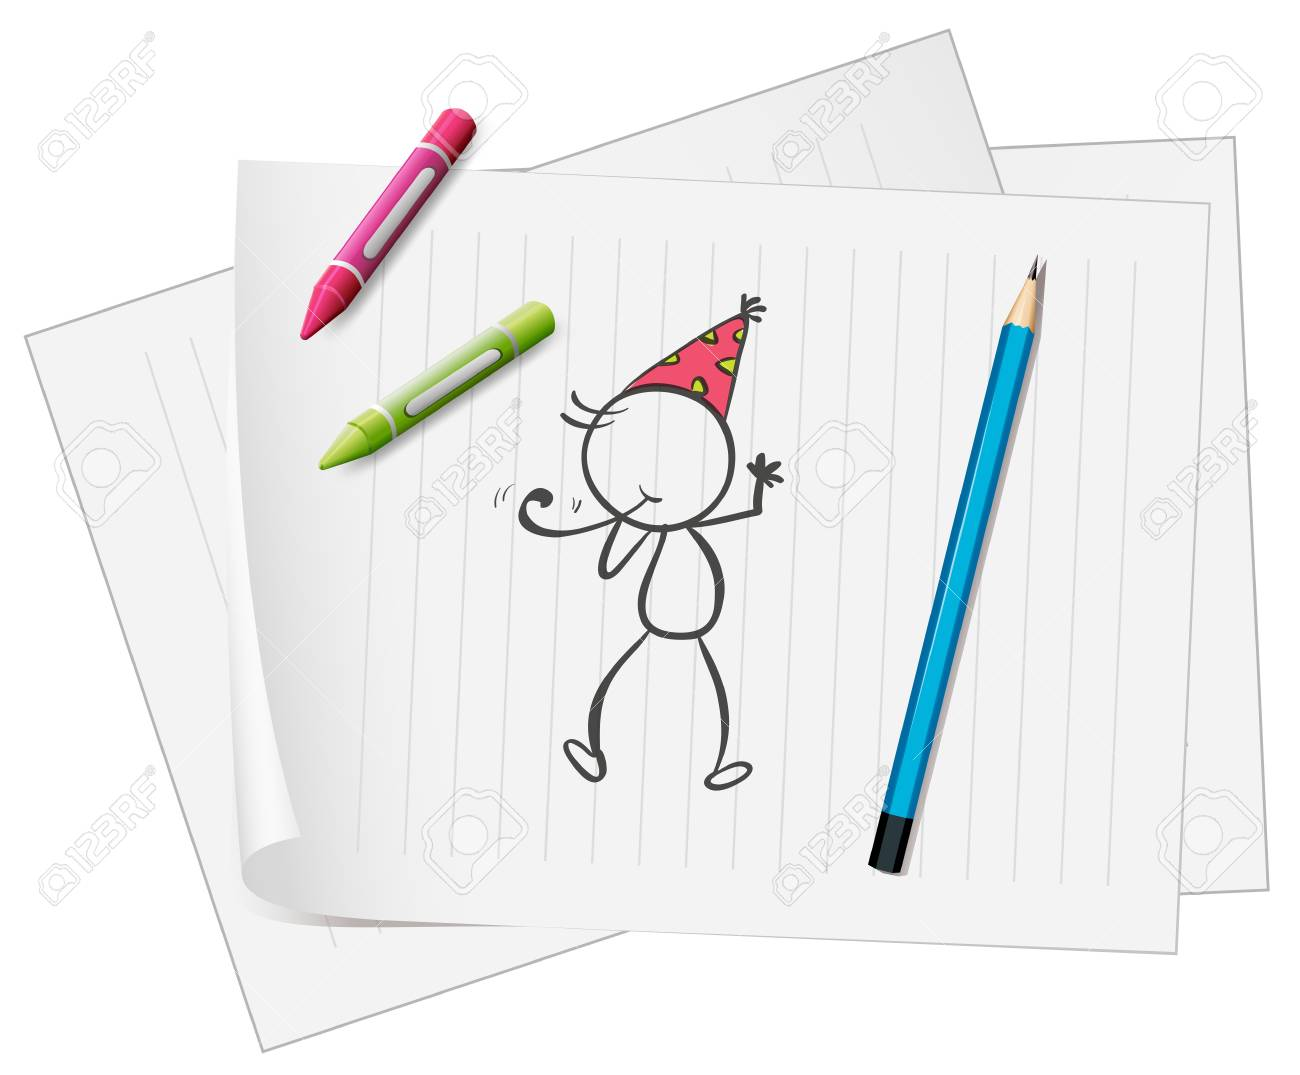 Illustration of a paper with a sketch of a person with crayons and a pencil on